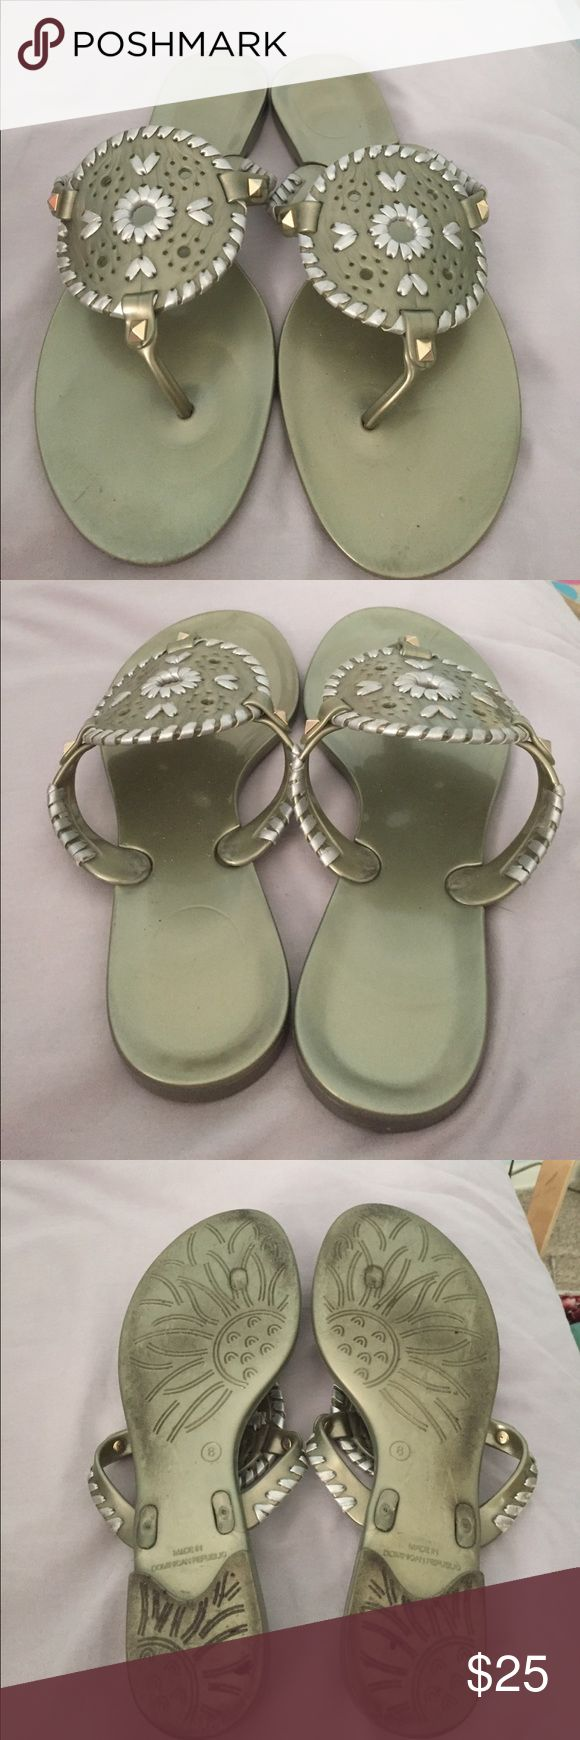 Jack Rogers sandals Jack Rogers sandals, worn a couple of times but otherwise great condition, jelly sandals Jack Rogers Shoes Sandals